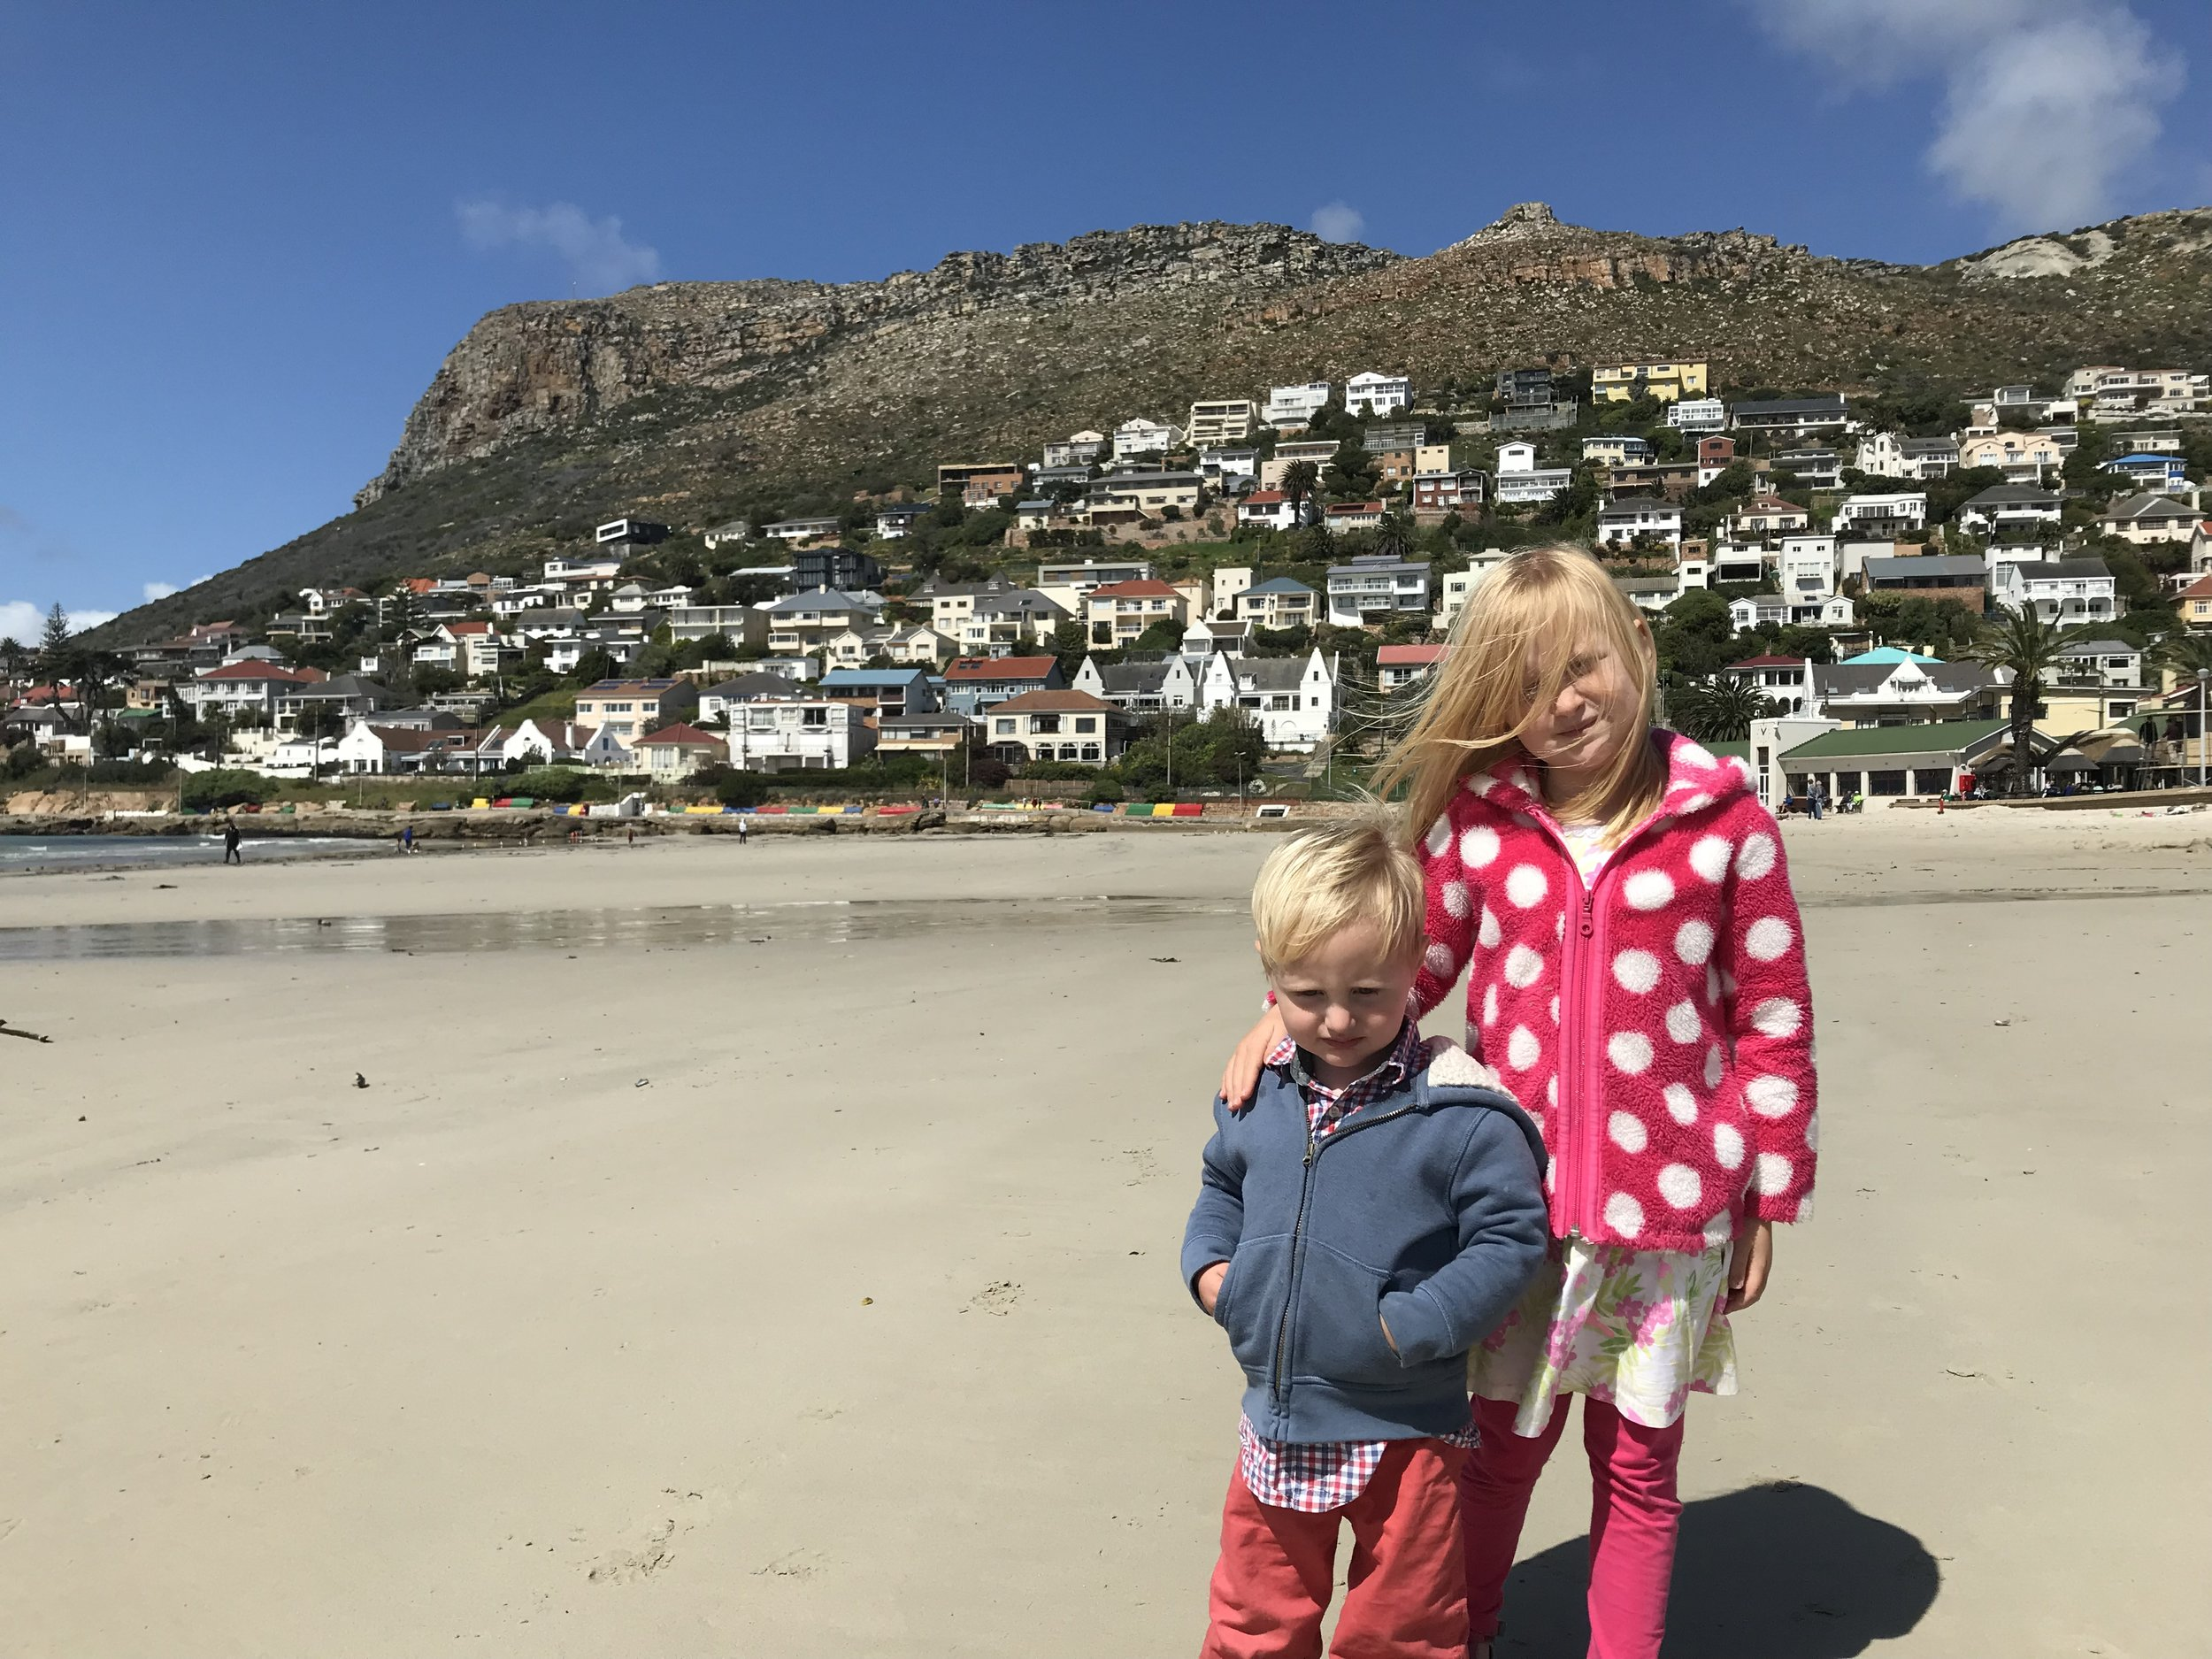 The kids on the beach in Cape Town this September.